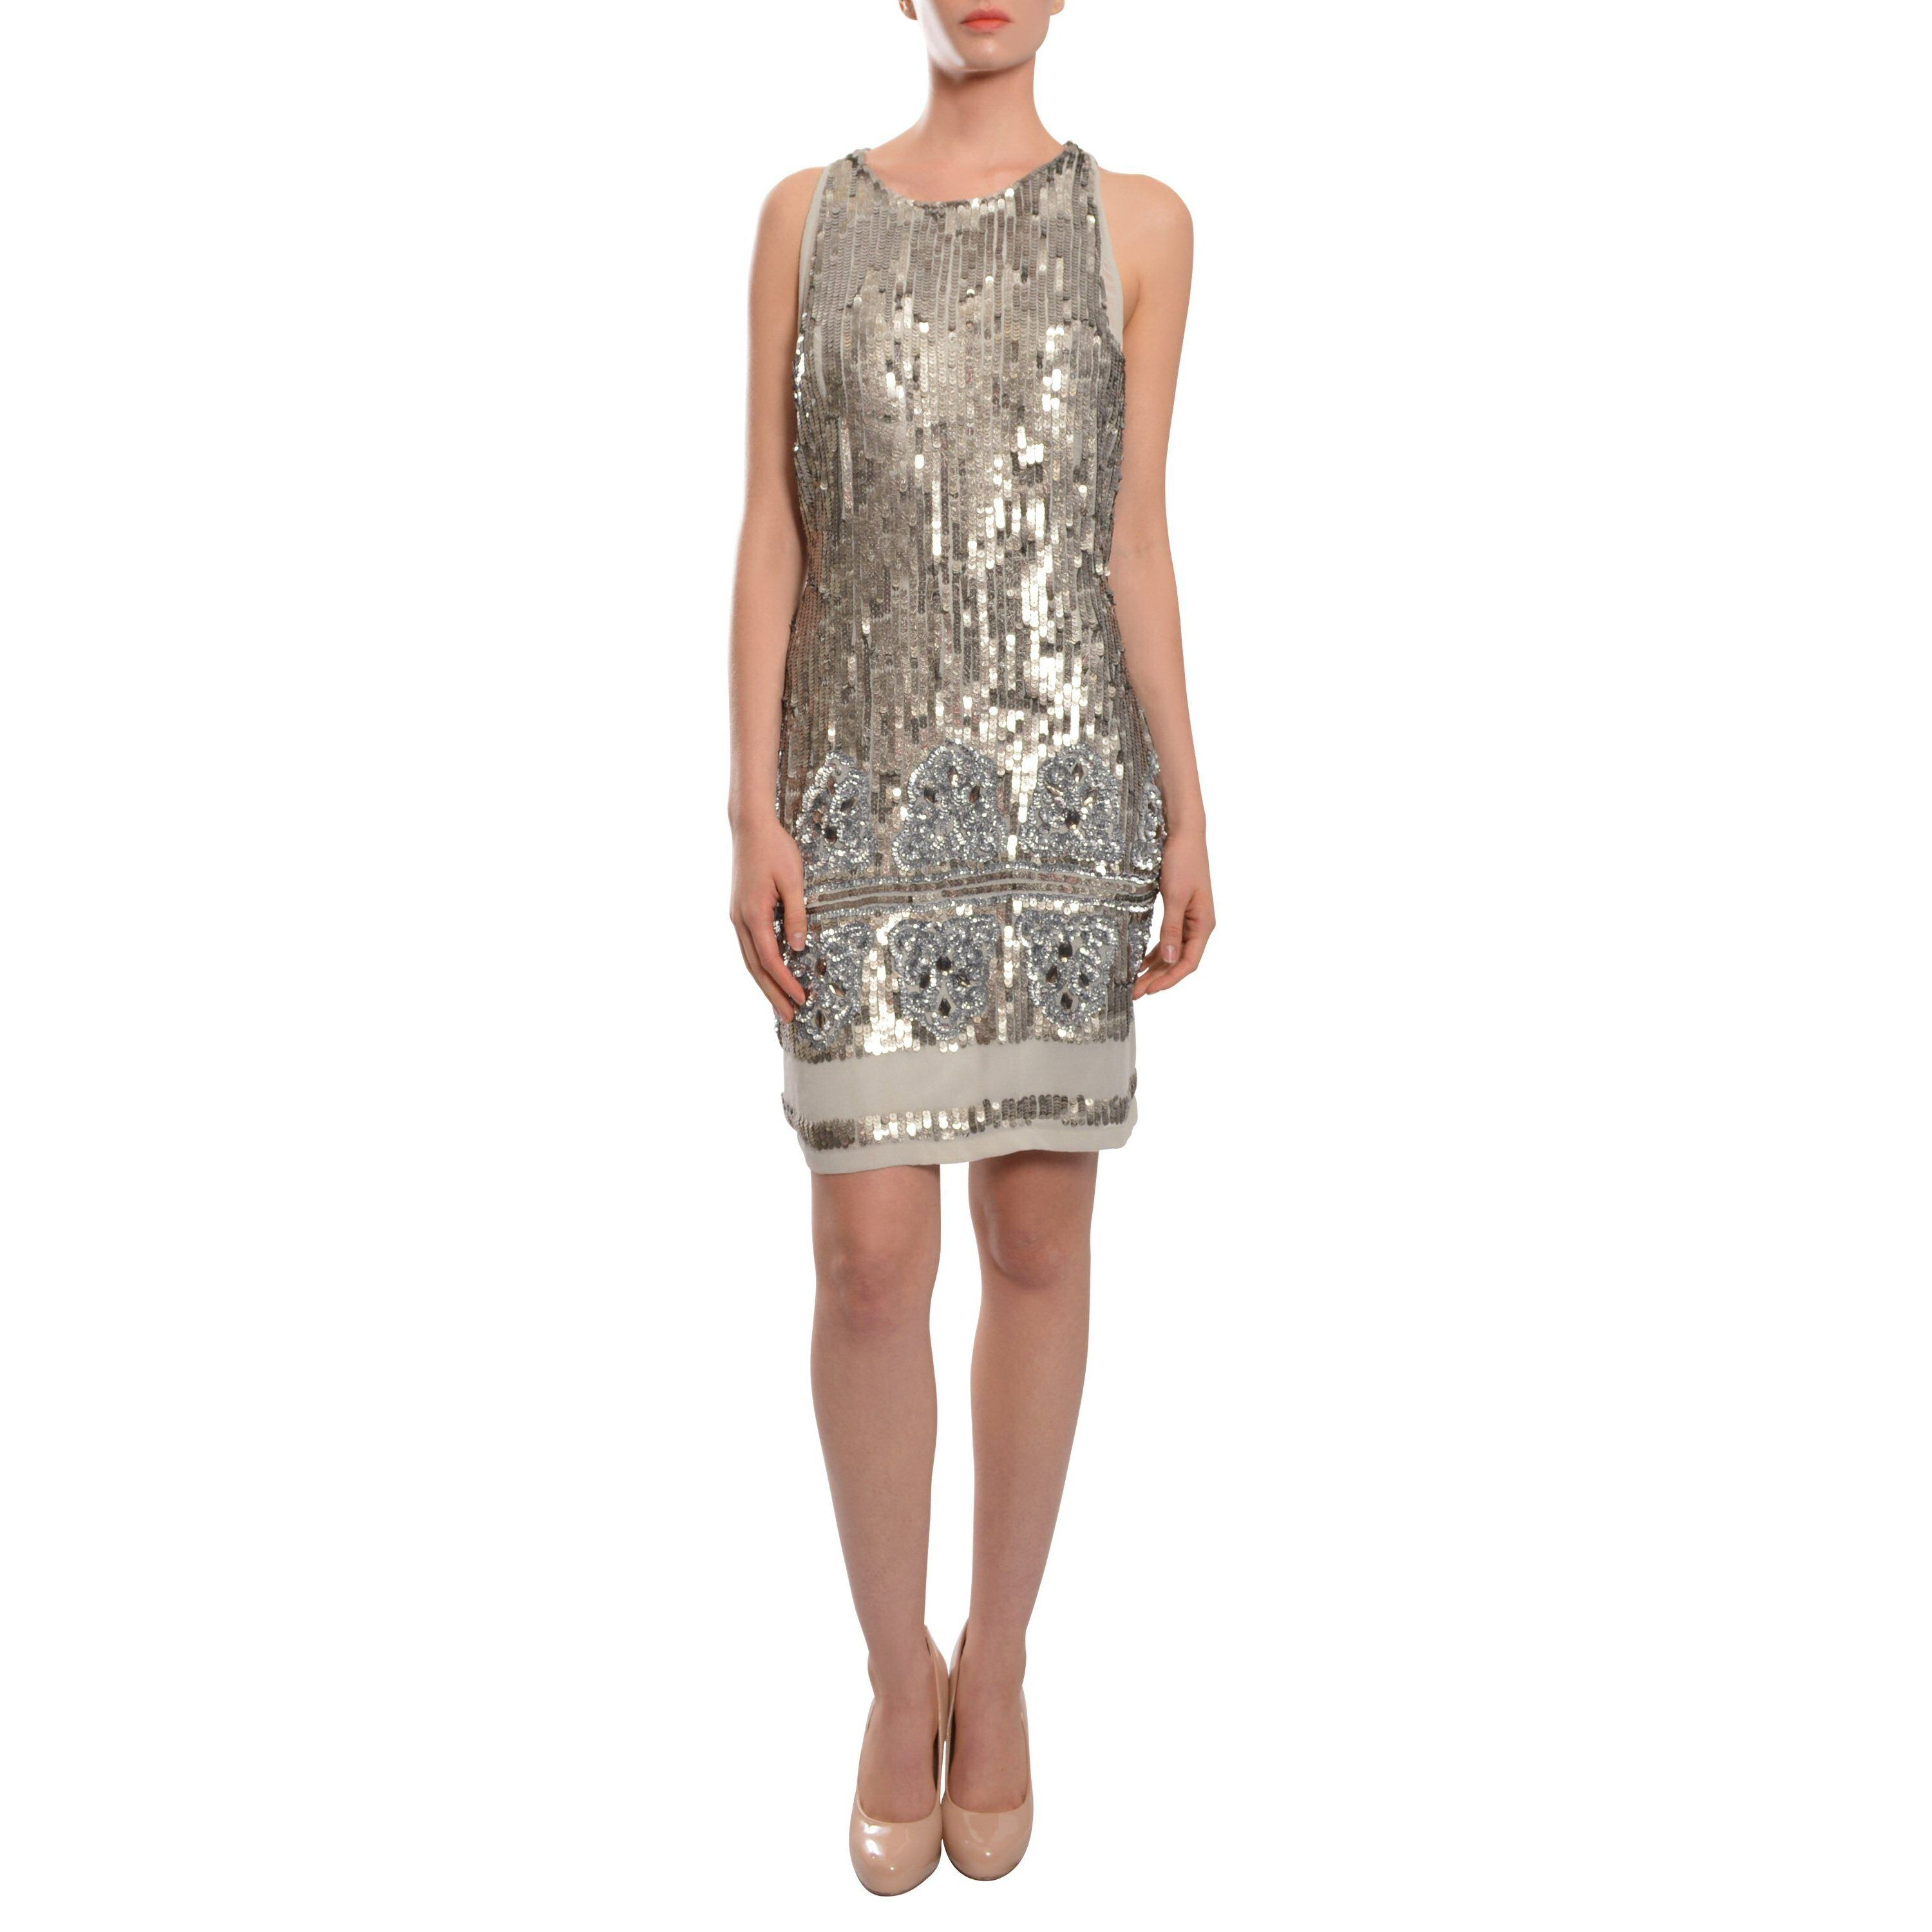 Make a fashion statement with this modern cocktail dress. The ...